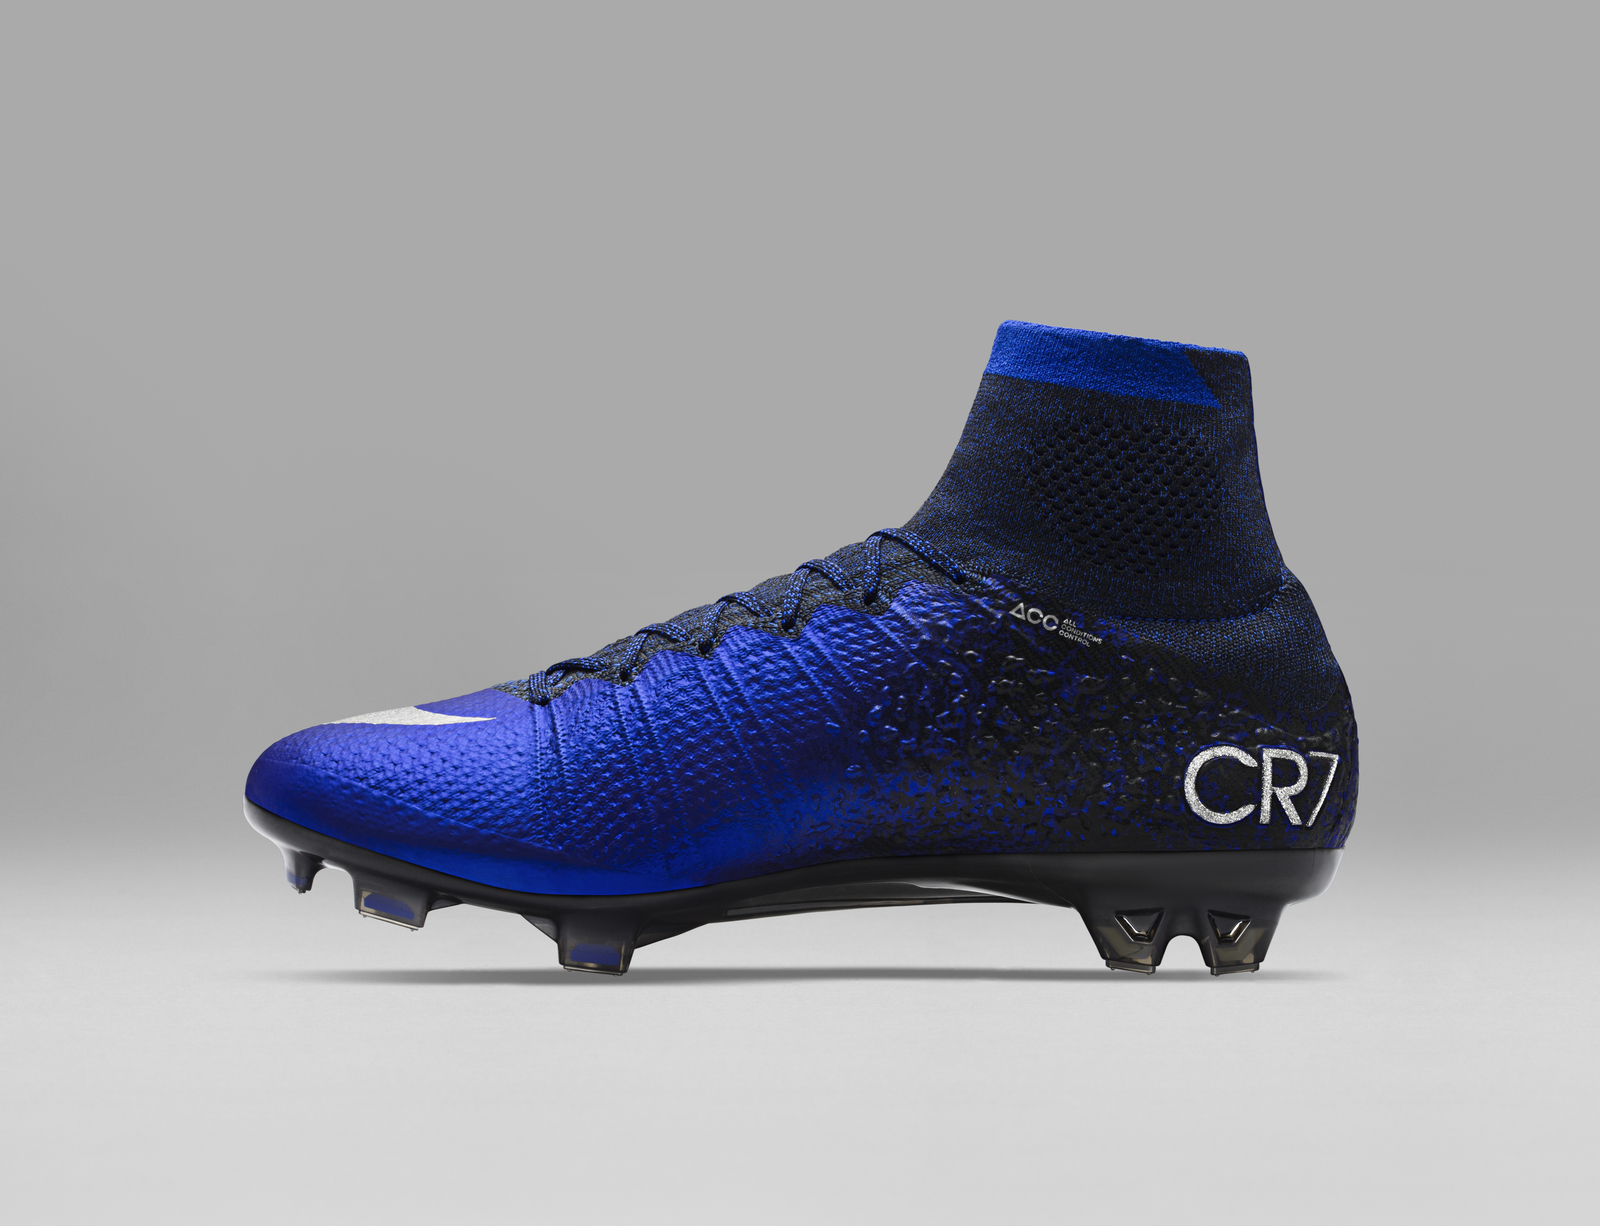 mercurial nike superfly cr7